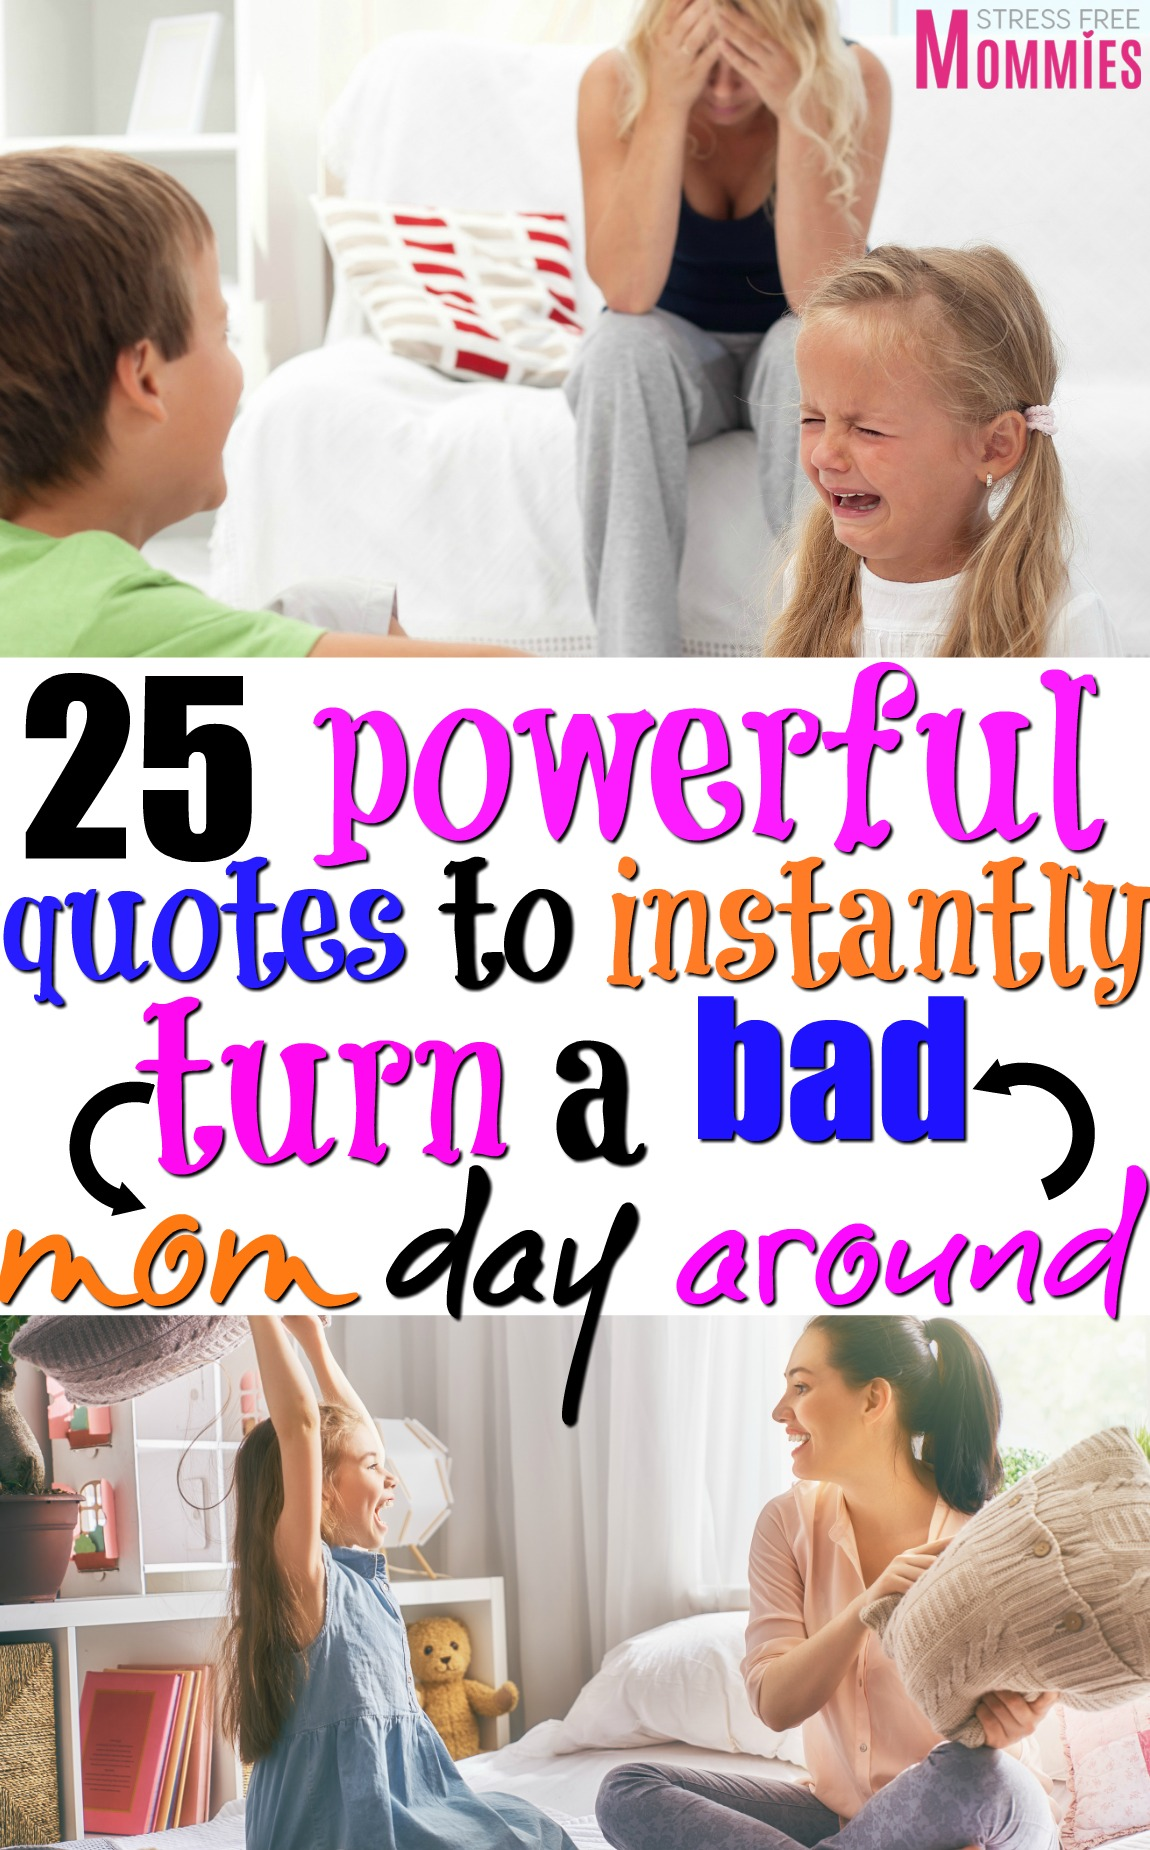 25 powerful quotes to instantly turn a bad mom day around